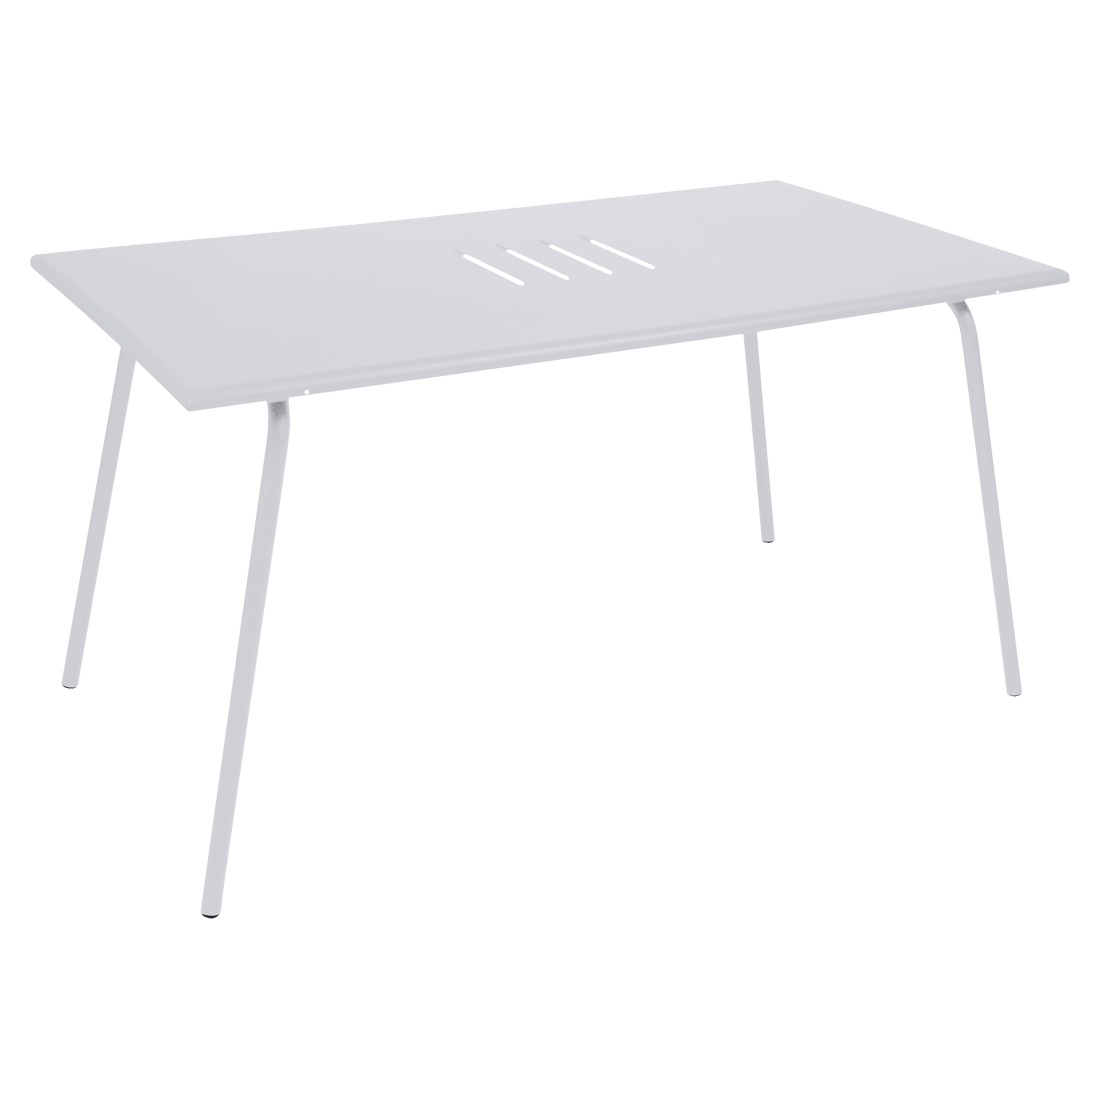 table de jardin, table metal, table rectangulaire, table 6 personnes, table banche